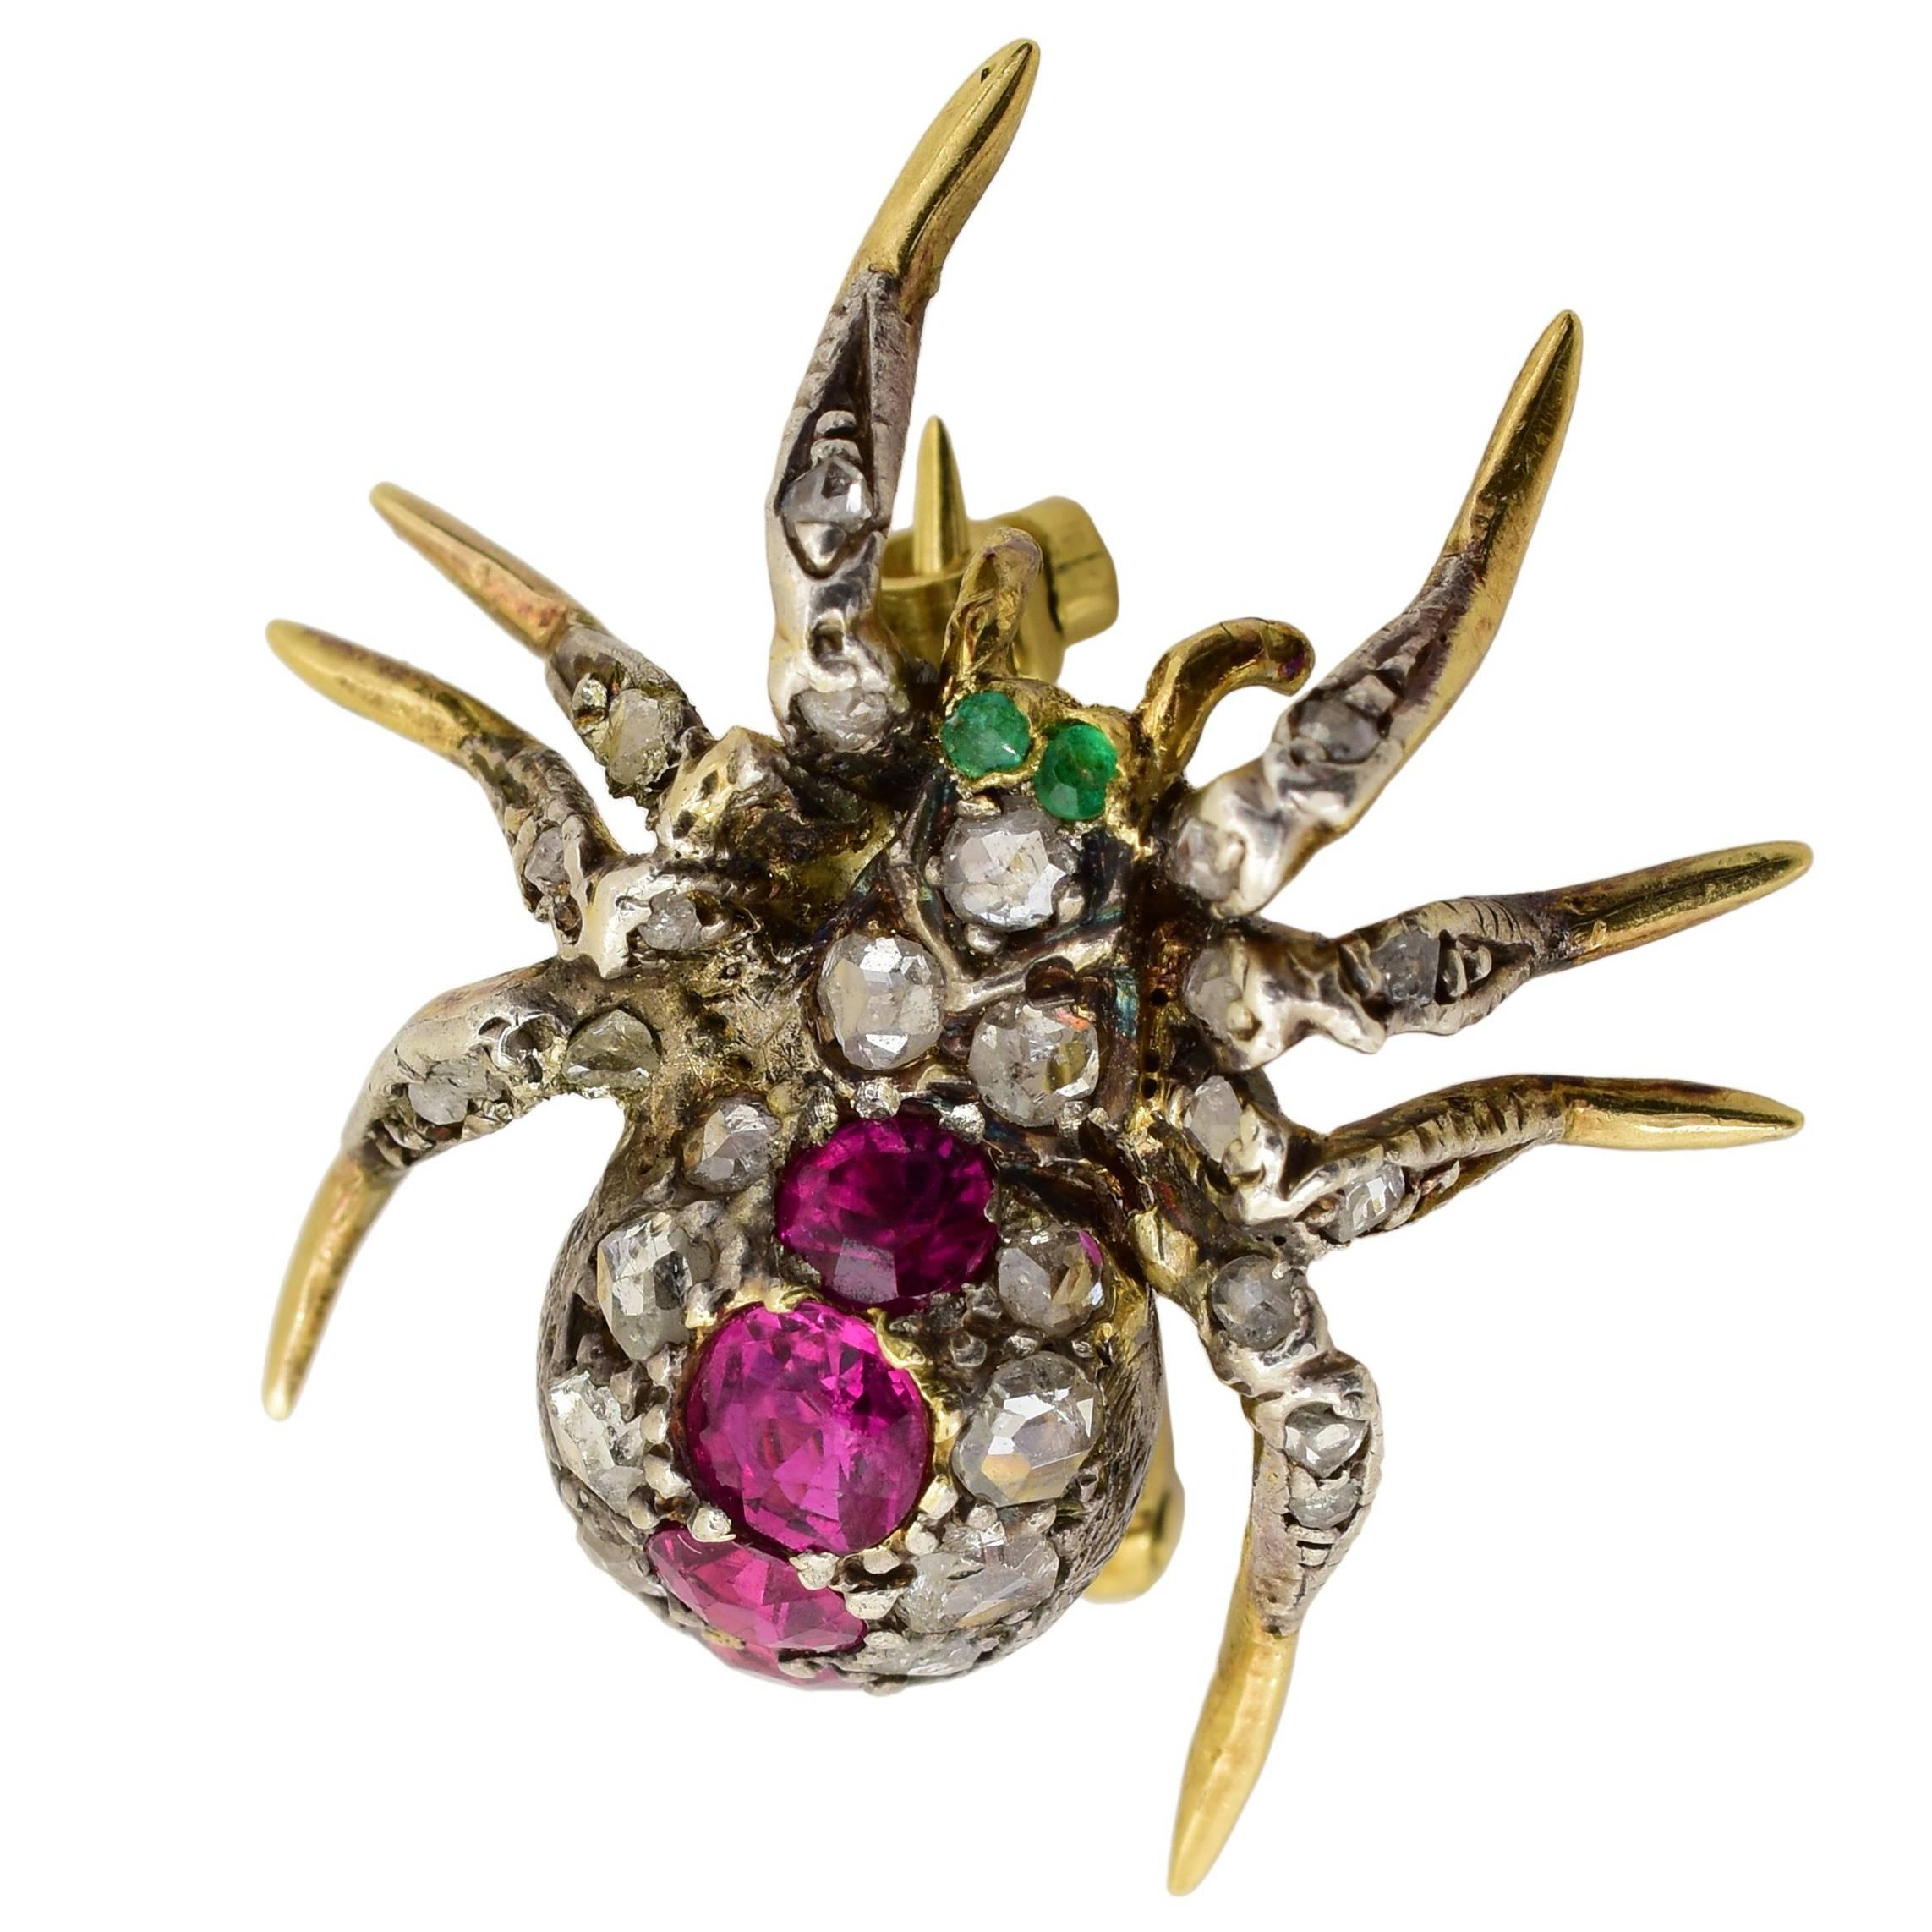 spend shine deco auction brooch it in to jewellery how special watches very nouveau gems lot a and enamelled art